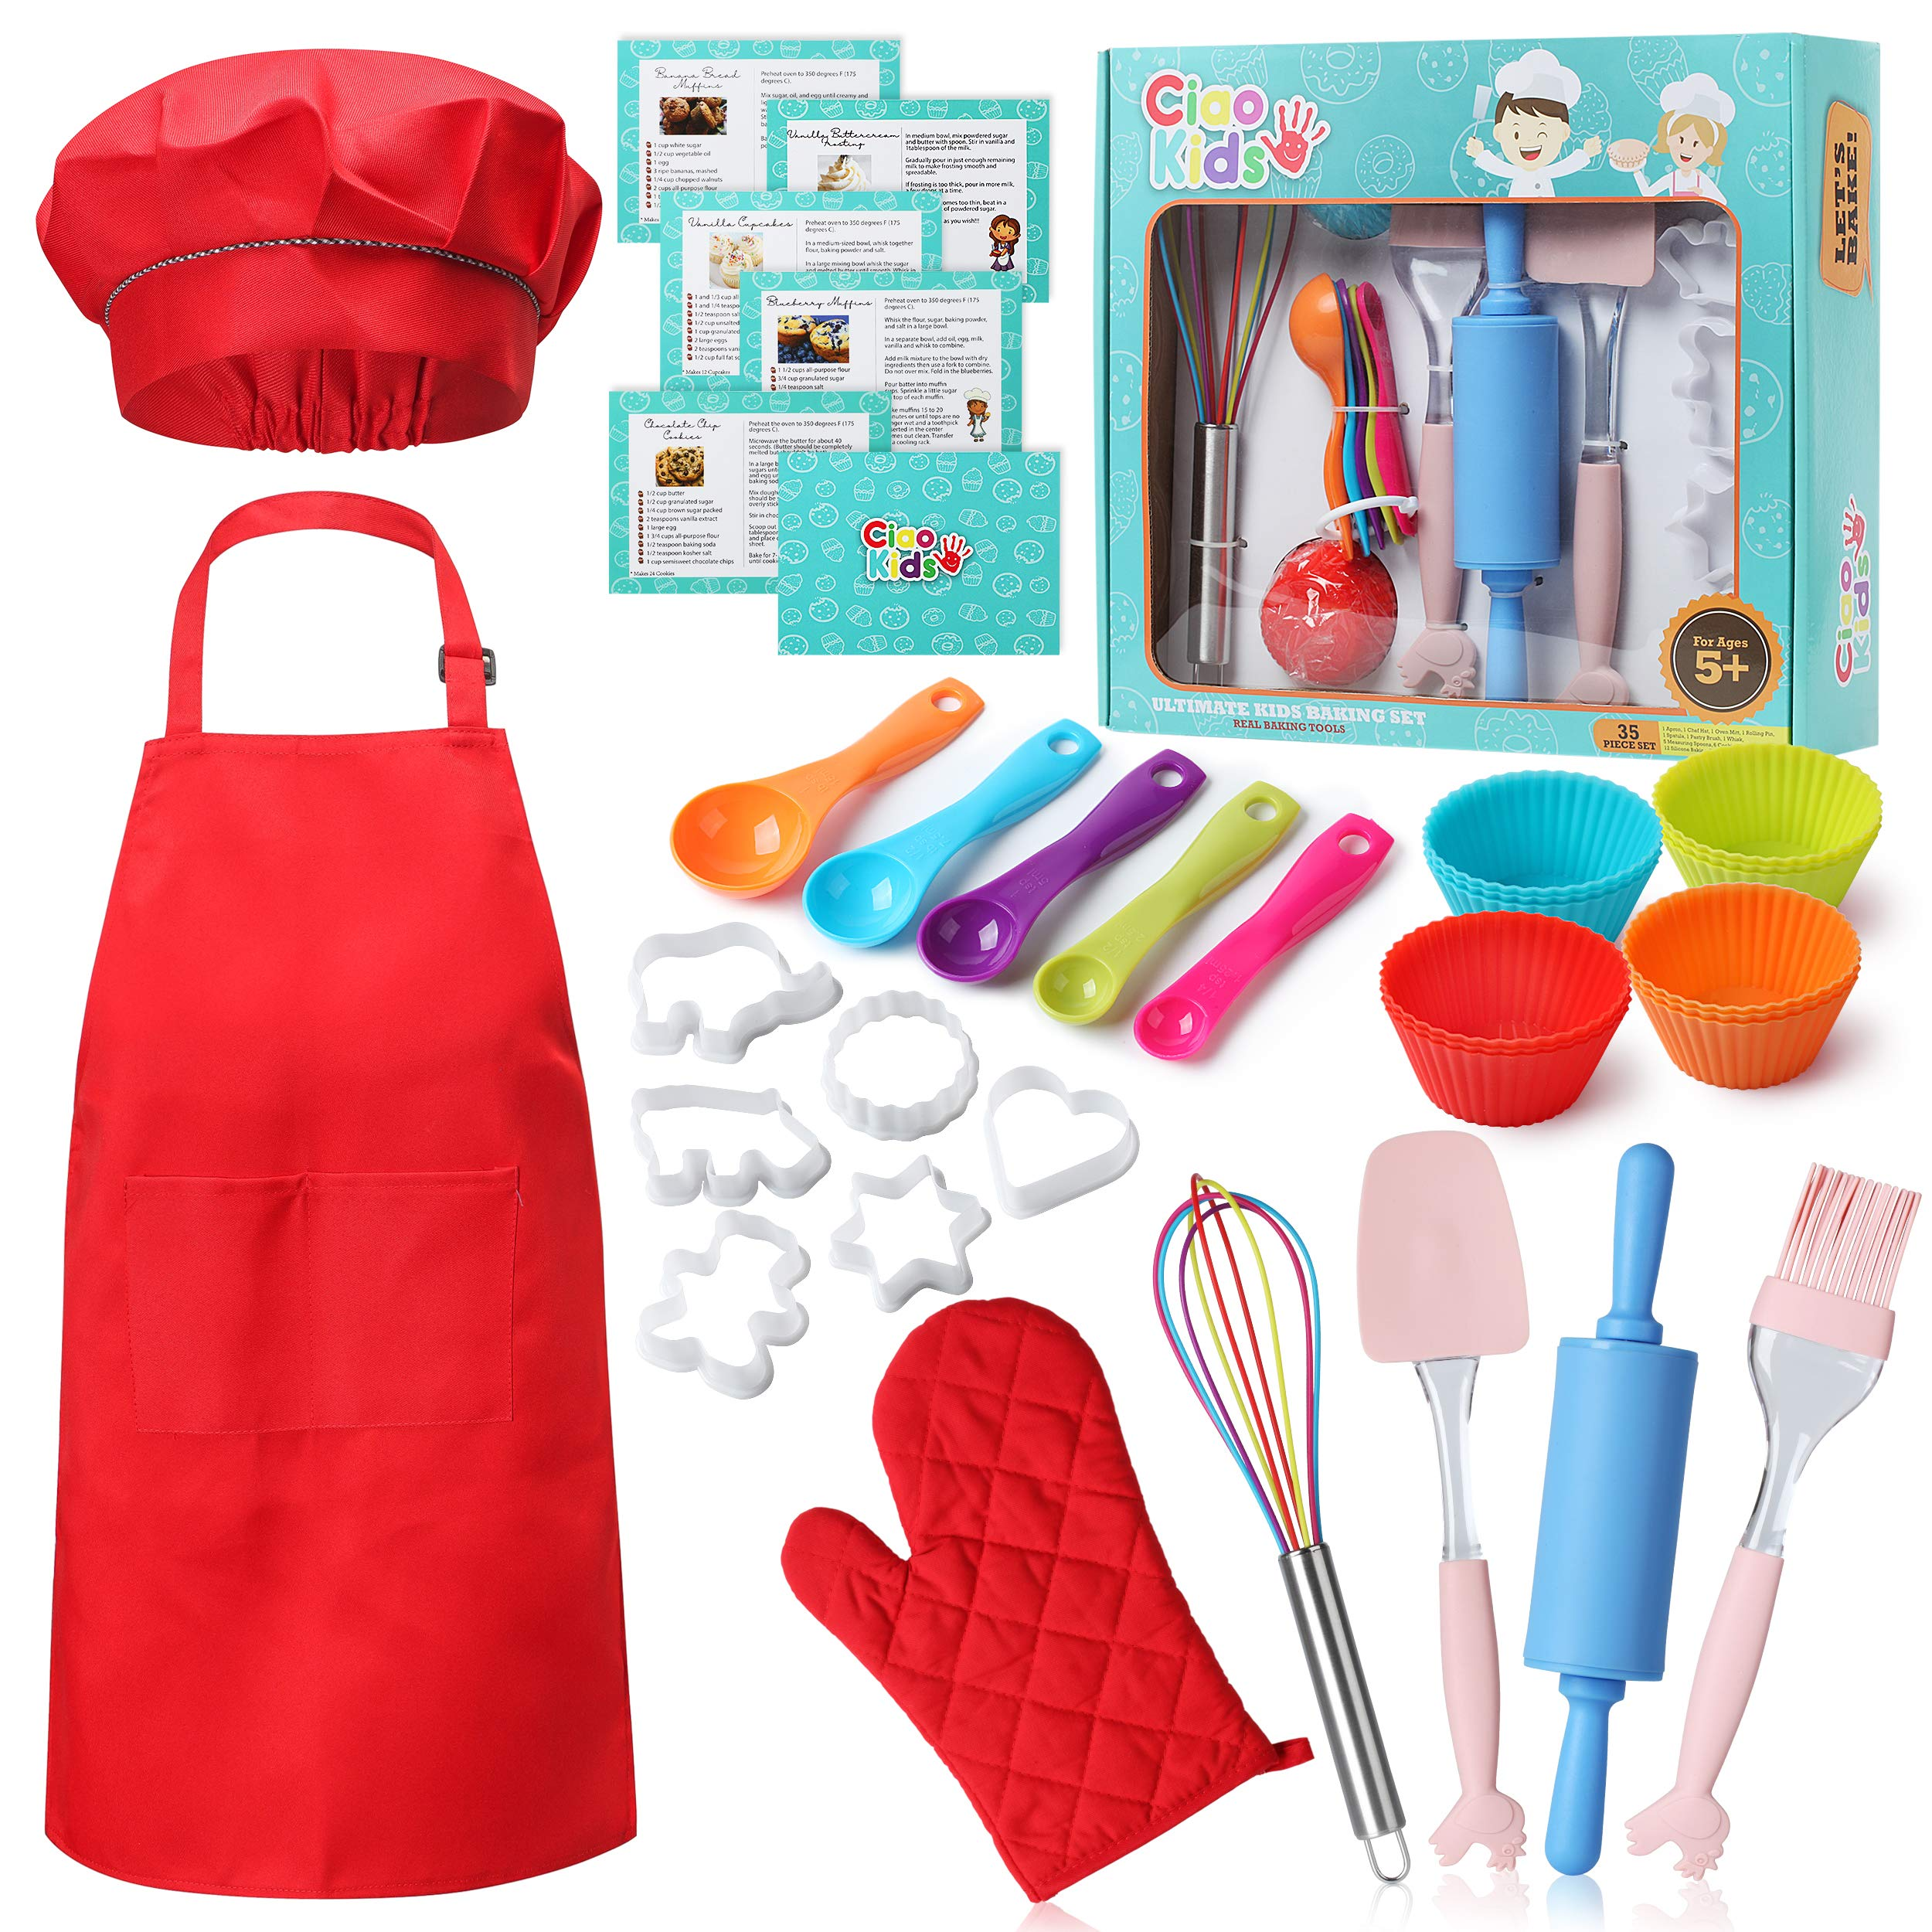 CiaoKids Real Kids Baking Set 35 Pcs includes Kids Apron, Chef Hat, Oven Mitt, Real Baking Tools and Recipes. by CiaoKids